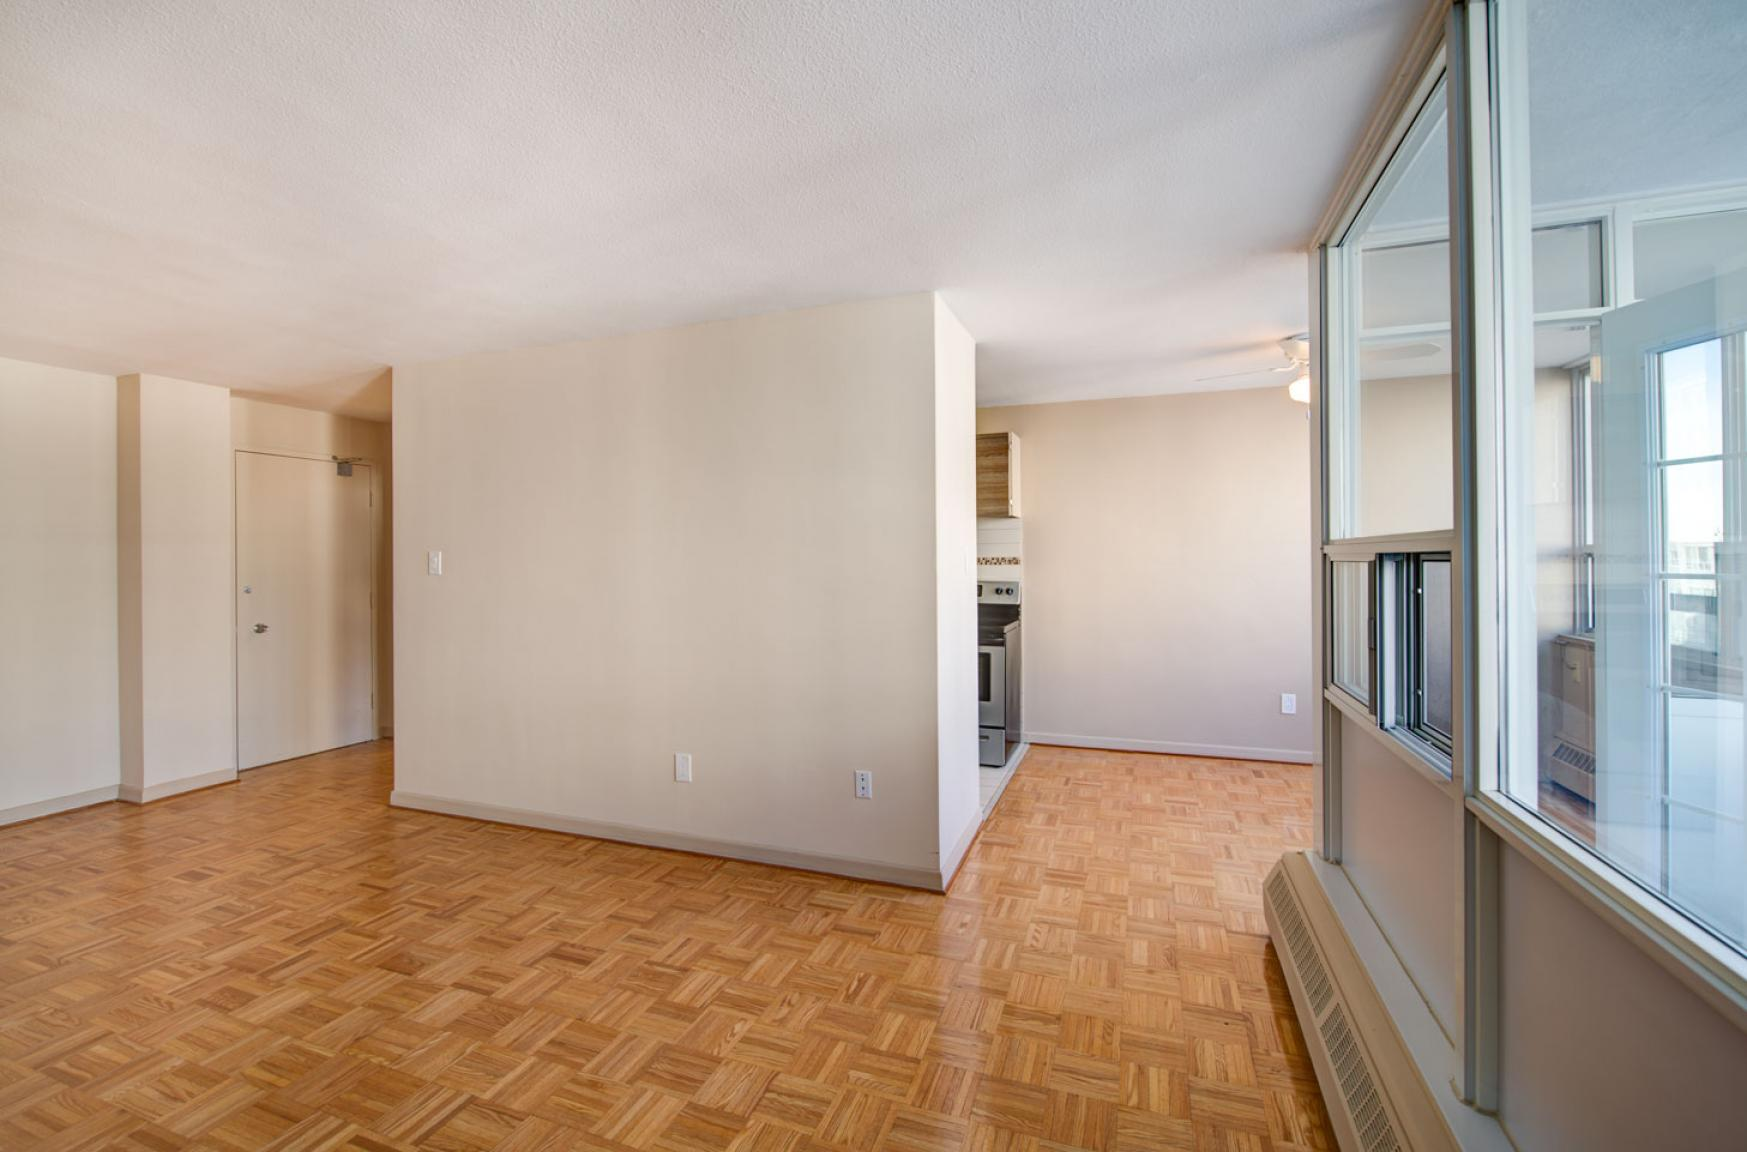 1 bedroom Apartments for rent in Toronto at Holly Tower - Photo 08 - RentersPages – L399824